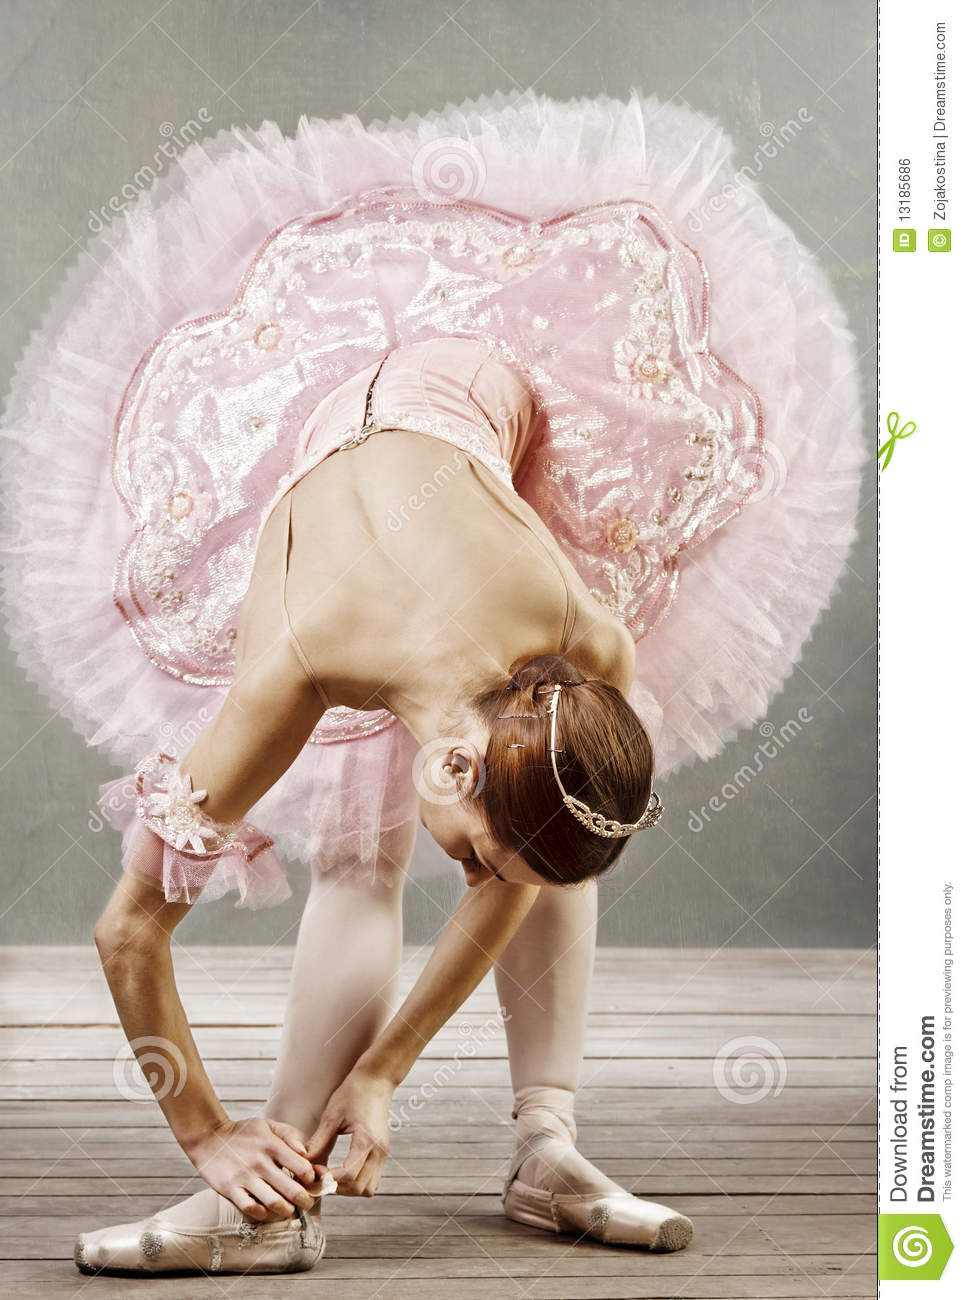 Young dancer fixing her slippers